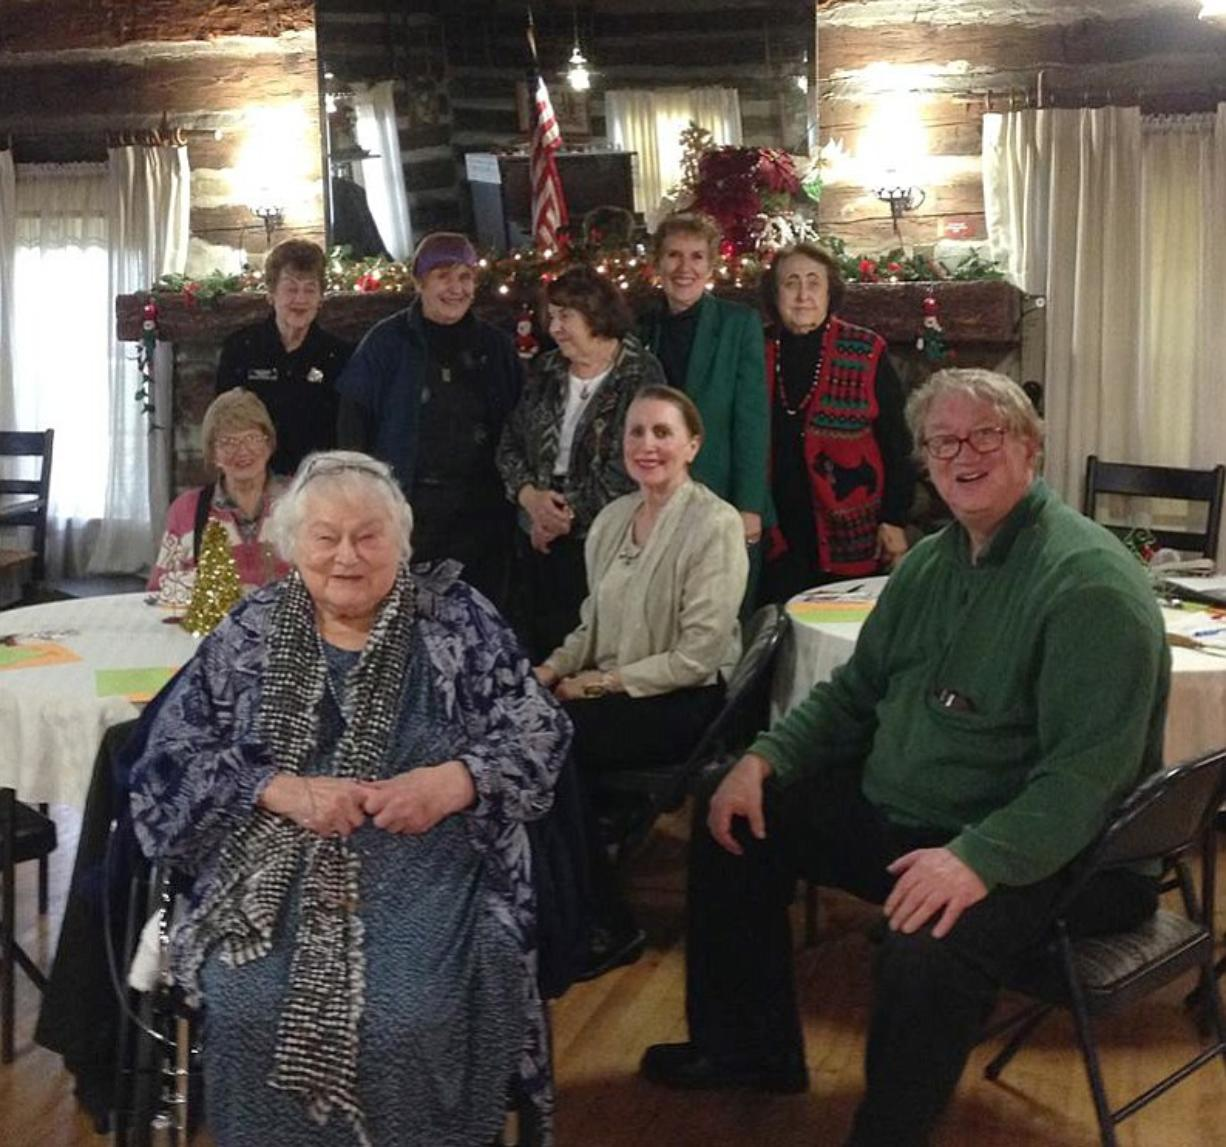 Jean Norwood, front left, participated in the Dec. 8 meeting of the Vancouver Women's Club.